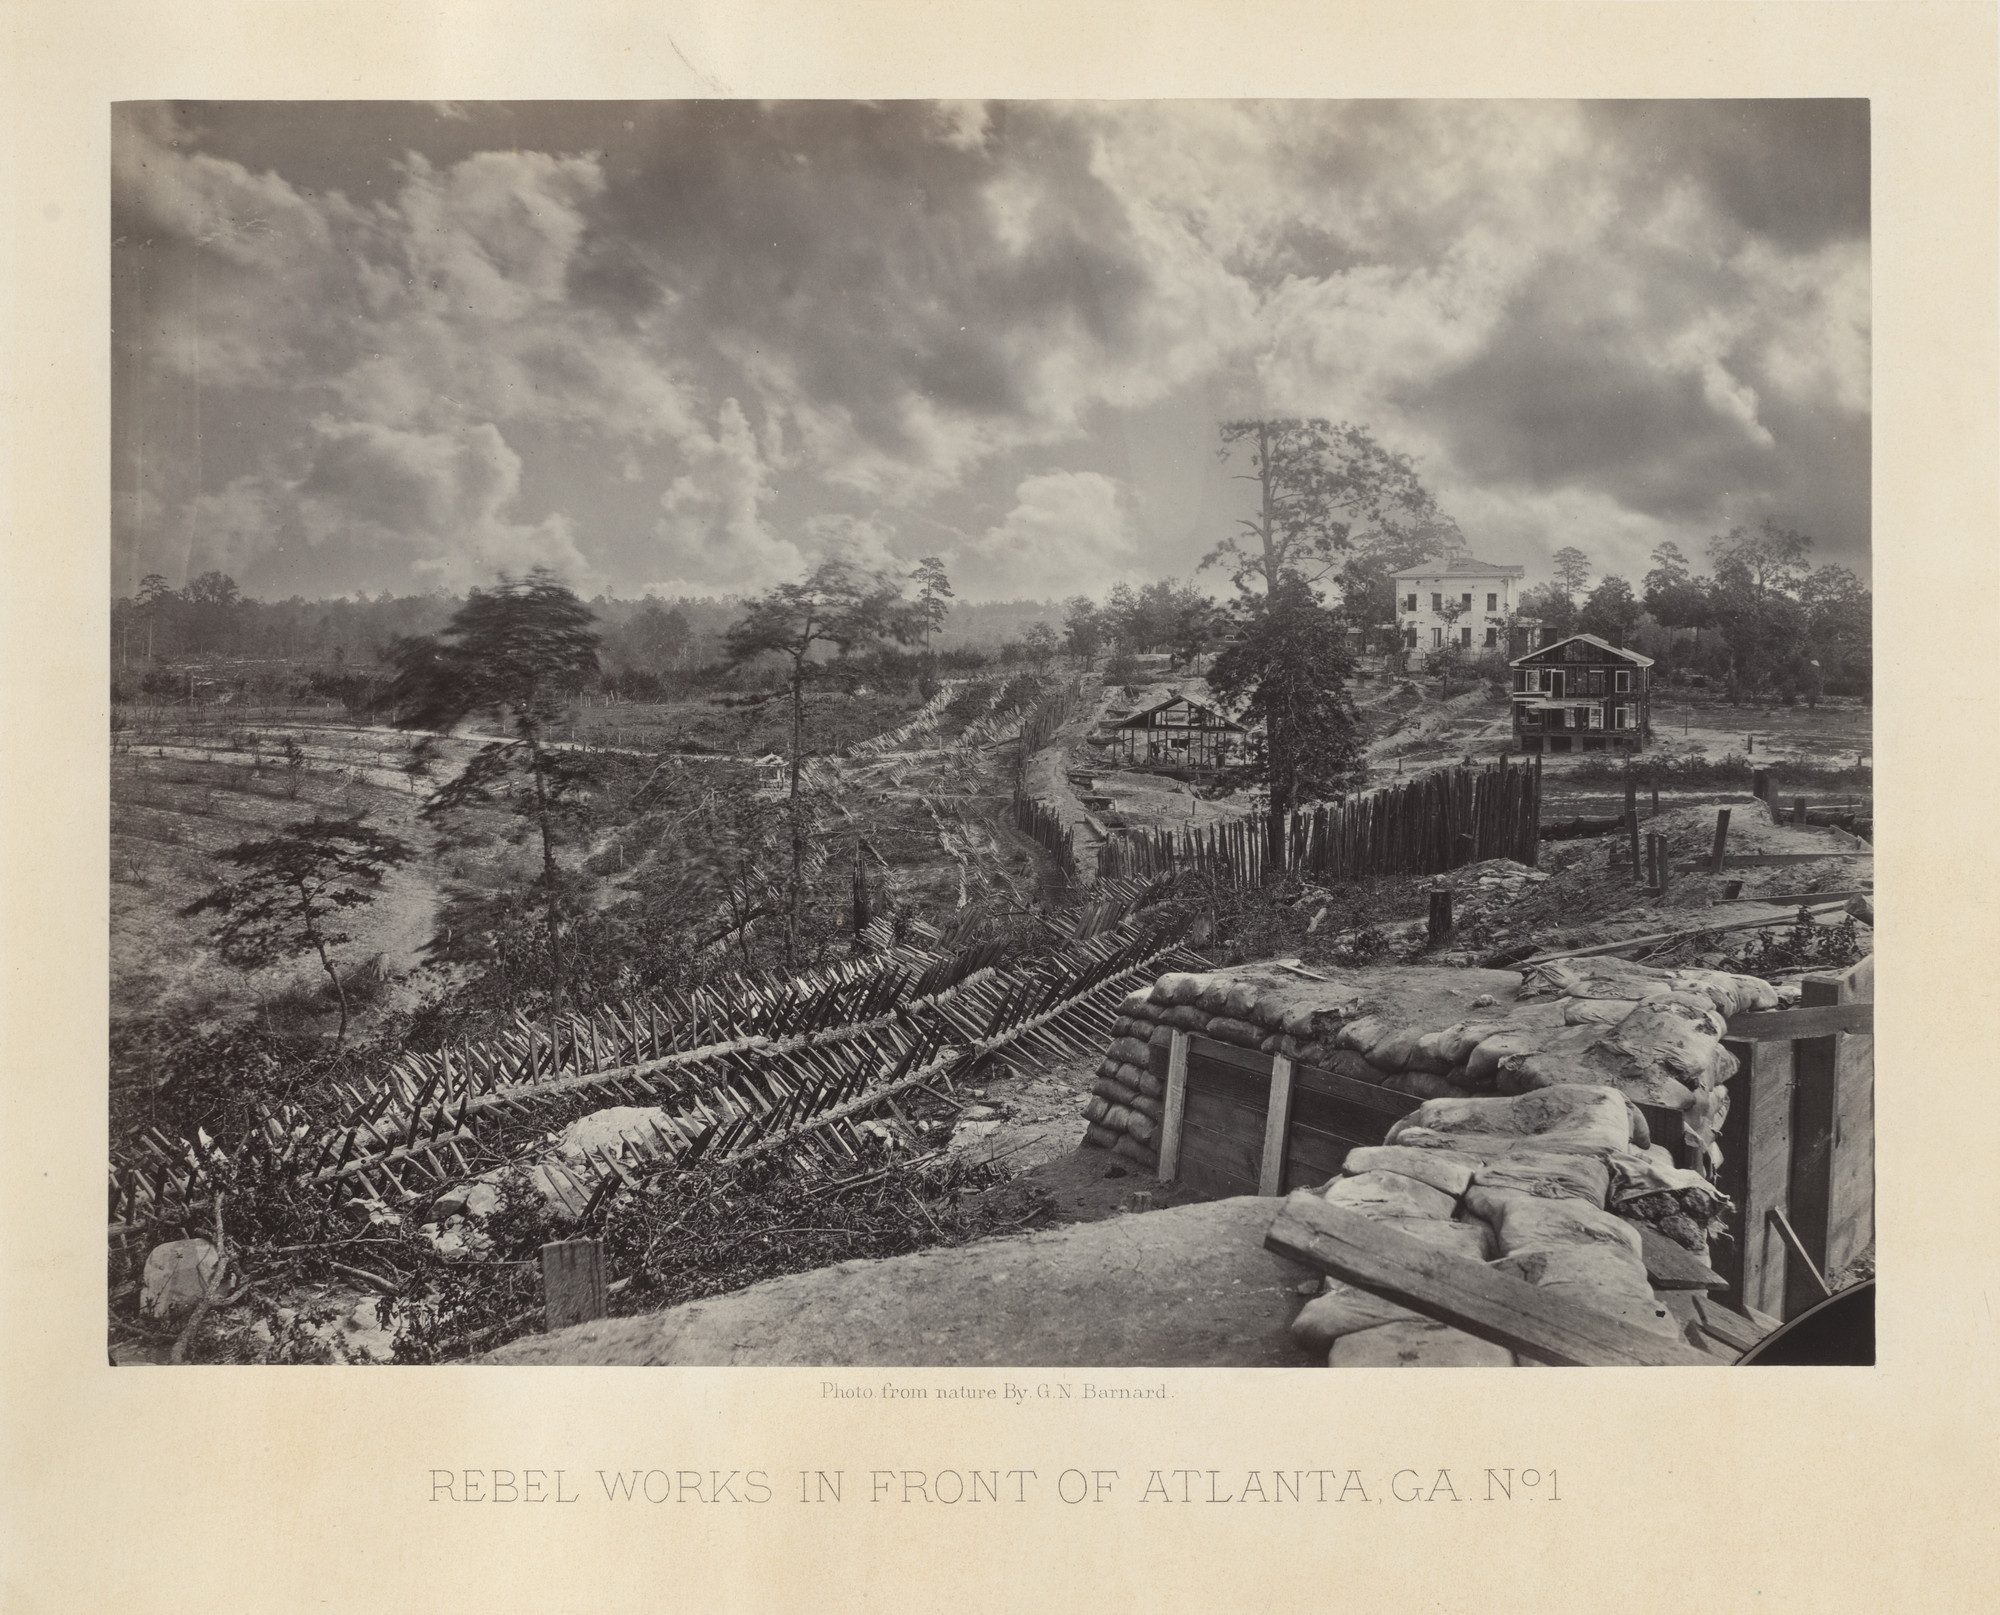 George Barnard. Rebel Works in front of Atlanta, Georgia, No. 1 from the album Photographic Views of Sherman's Campaign. 1864-65